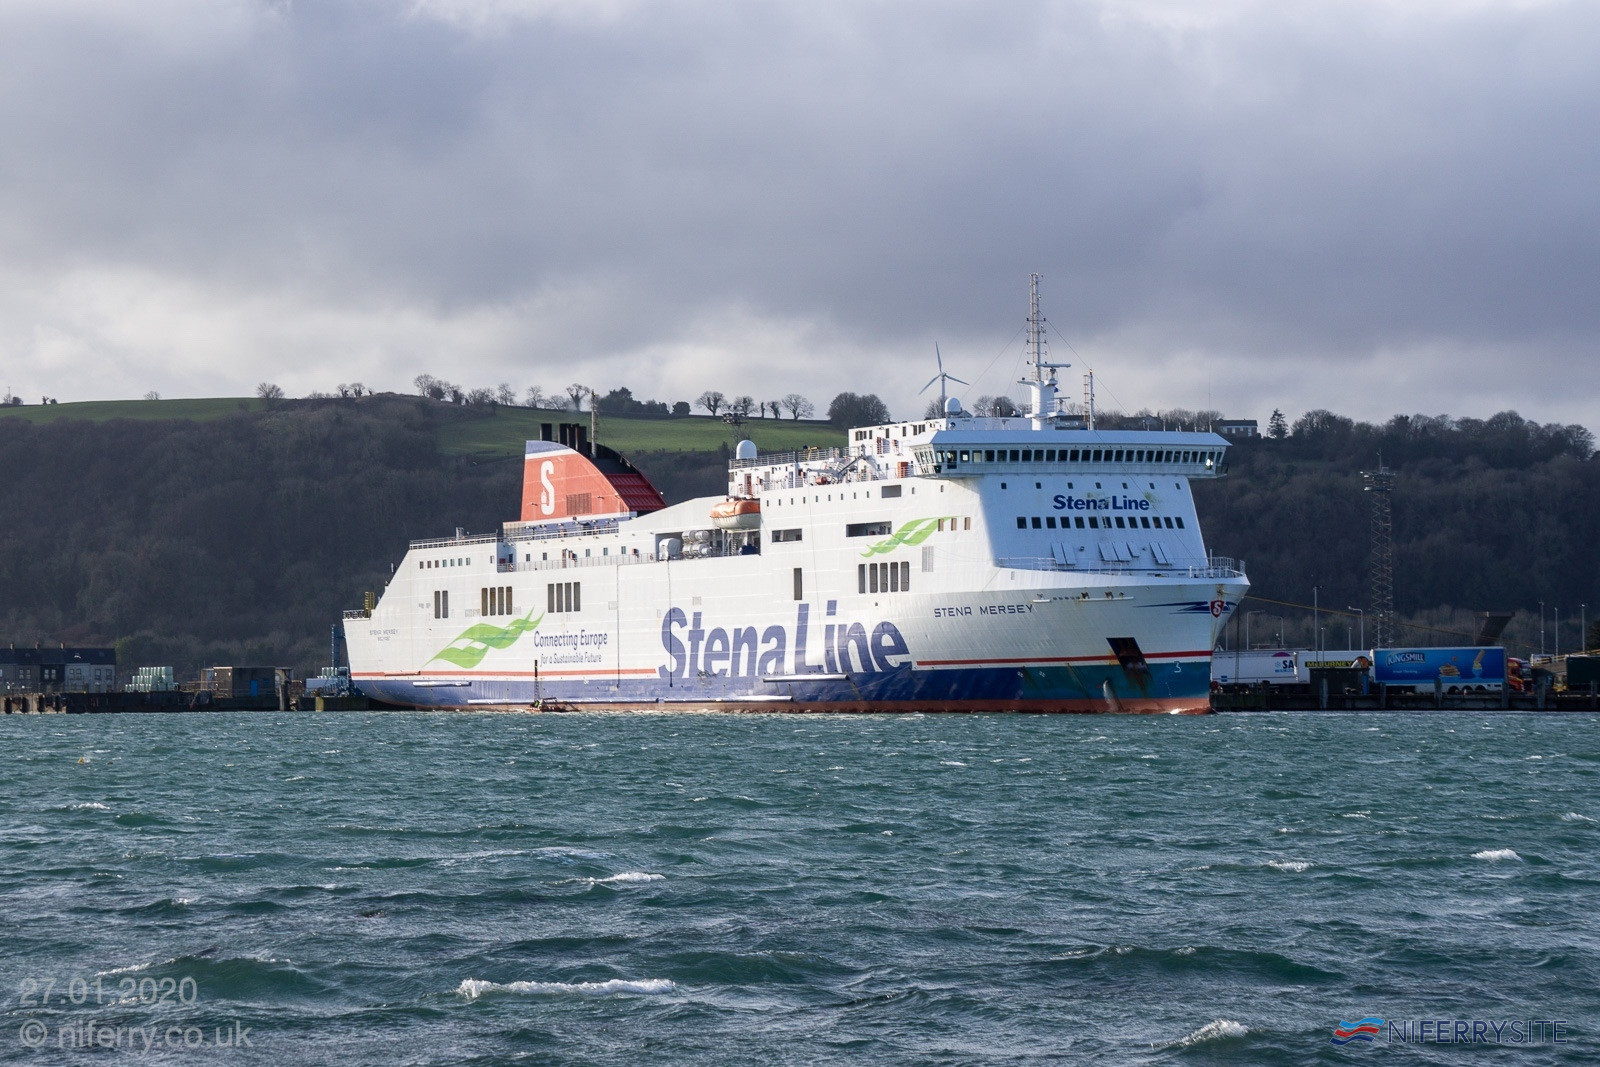 <strong>STENA MERSEY</strong> at Larne, 27.01.2020. Copyright Steven Tarbox / niferry.co.uk.